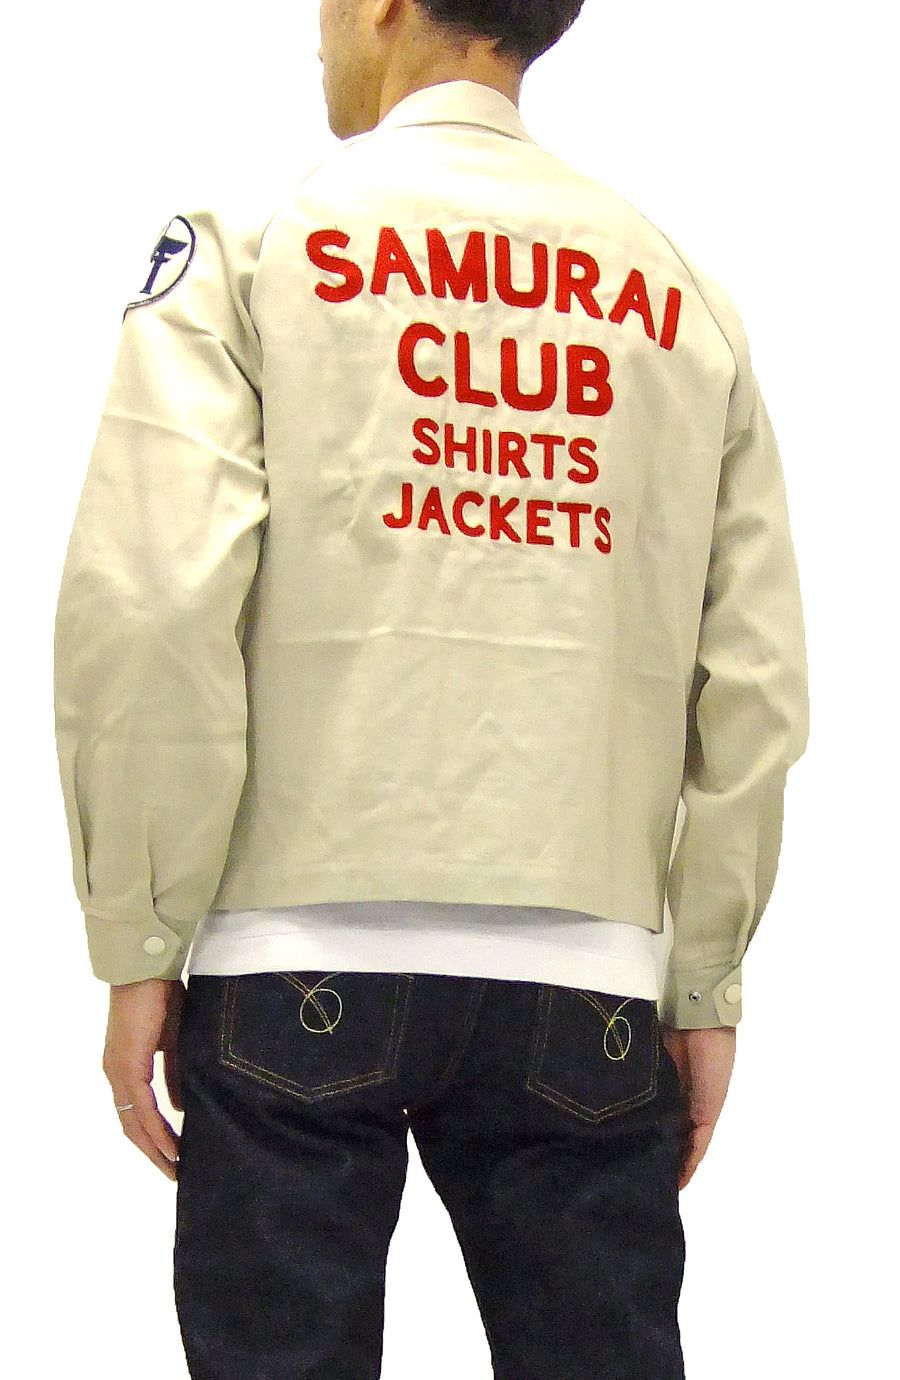 Samurai Jeans Embroidered Jacket Men's Cotton Lightweight Outerwear SCCJK19-02 Ivory